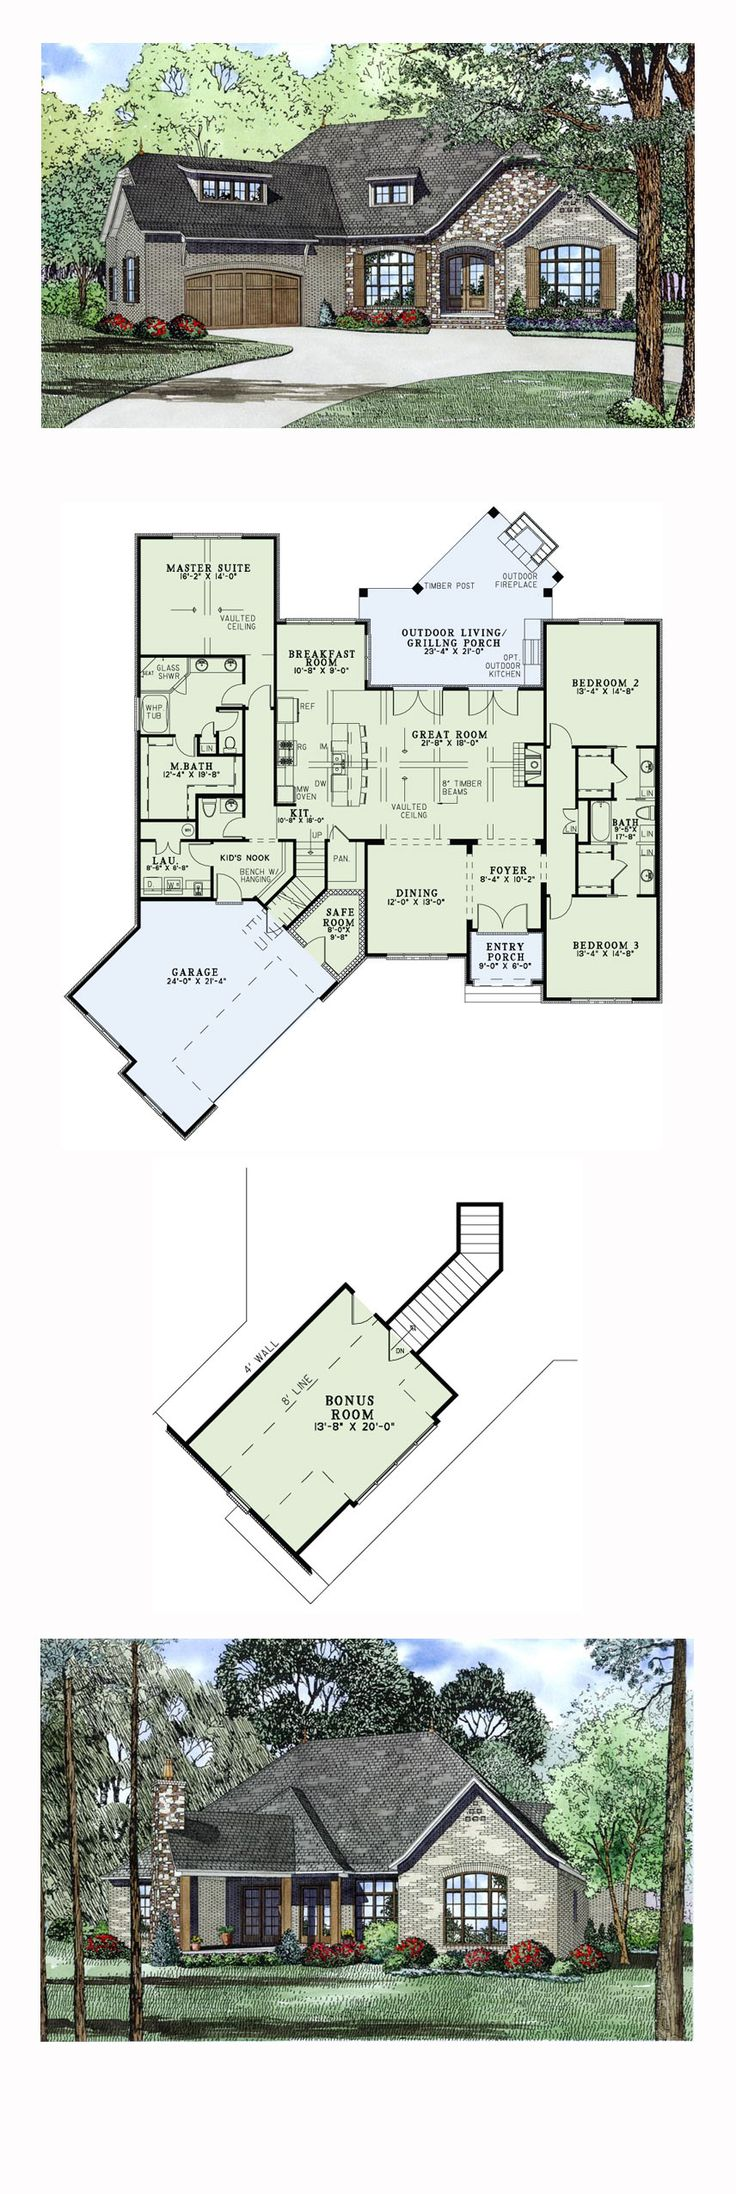 Craftsman House Plan 82166 | Total Living Area: 2408 sq. ft., 3 bedrooms and 2.5 bathrooms. The elegant Great Room features vaulted ceilings with timber beams, a fireplace and a pair of French Doors opening to the Grilling Porch. The Great Room is also open to the Kitchen and the eat-at island bar. #craftsmanhome